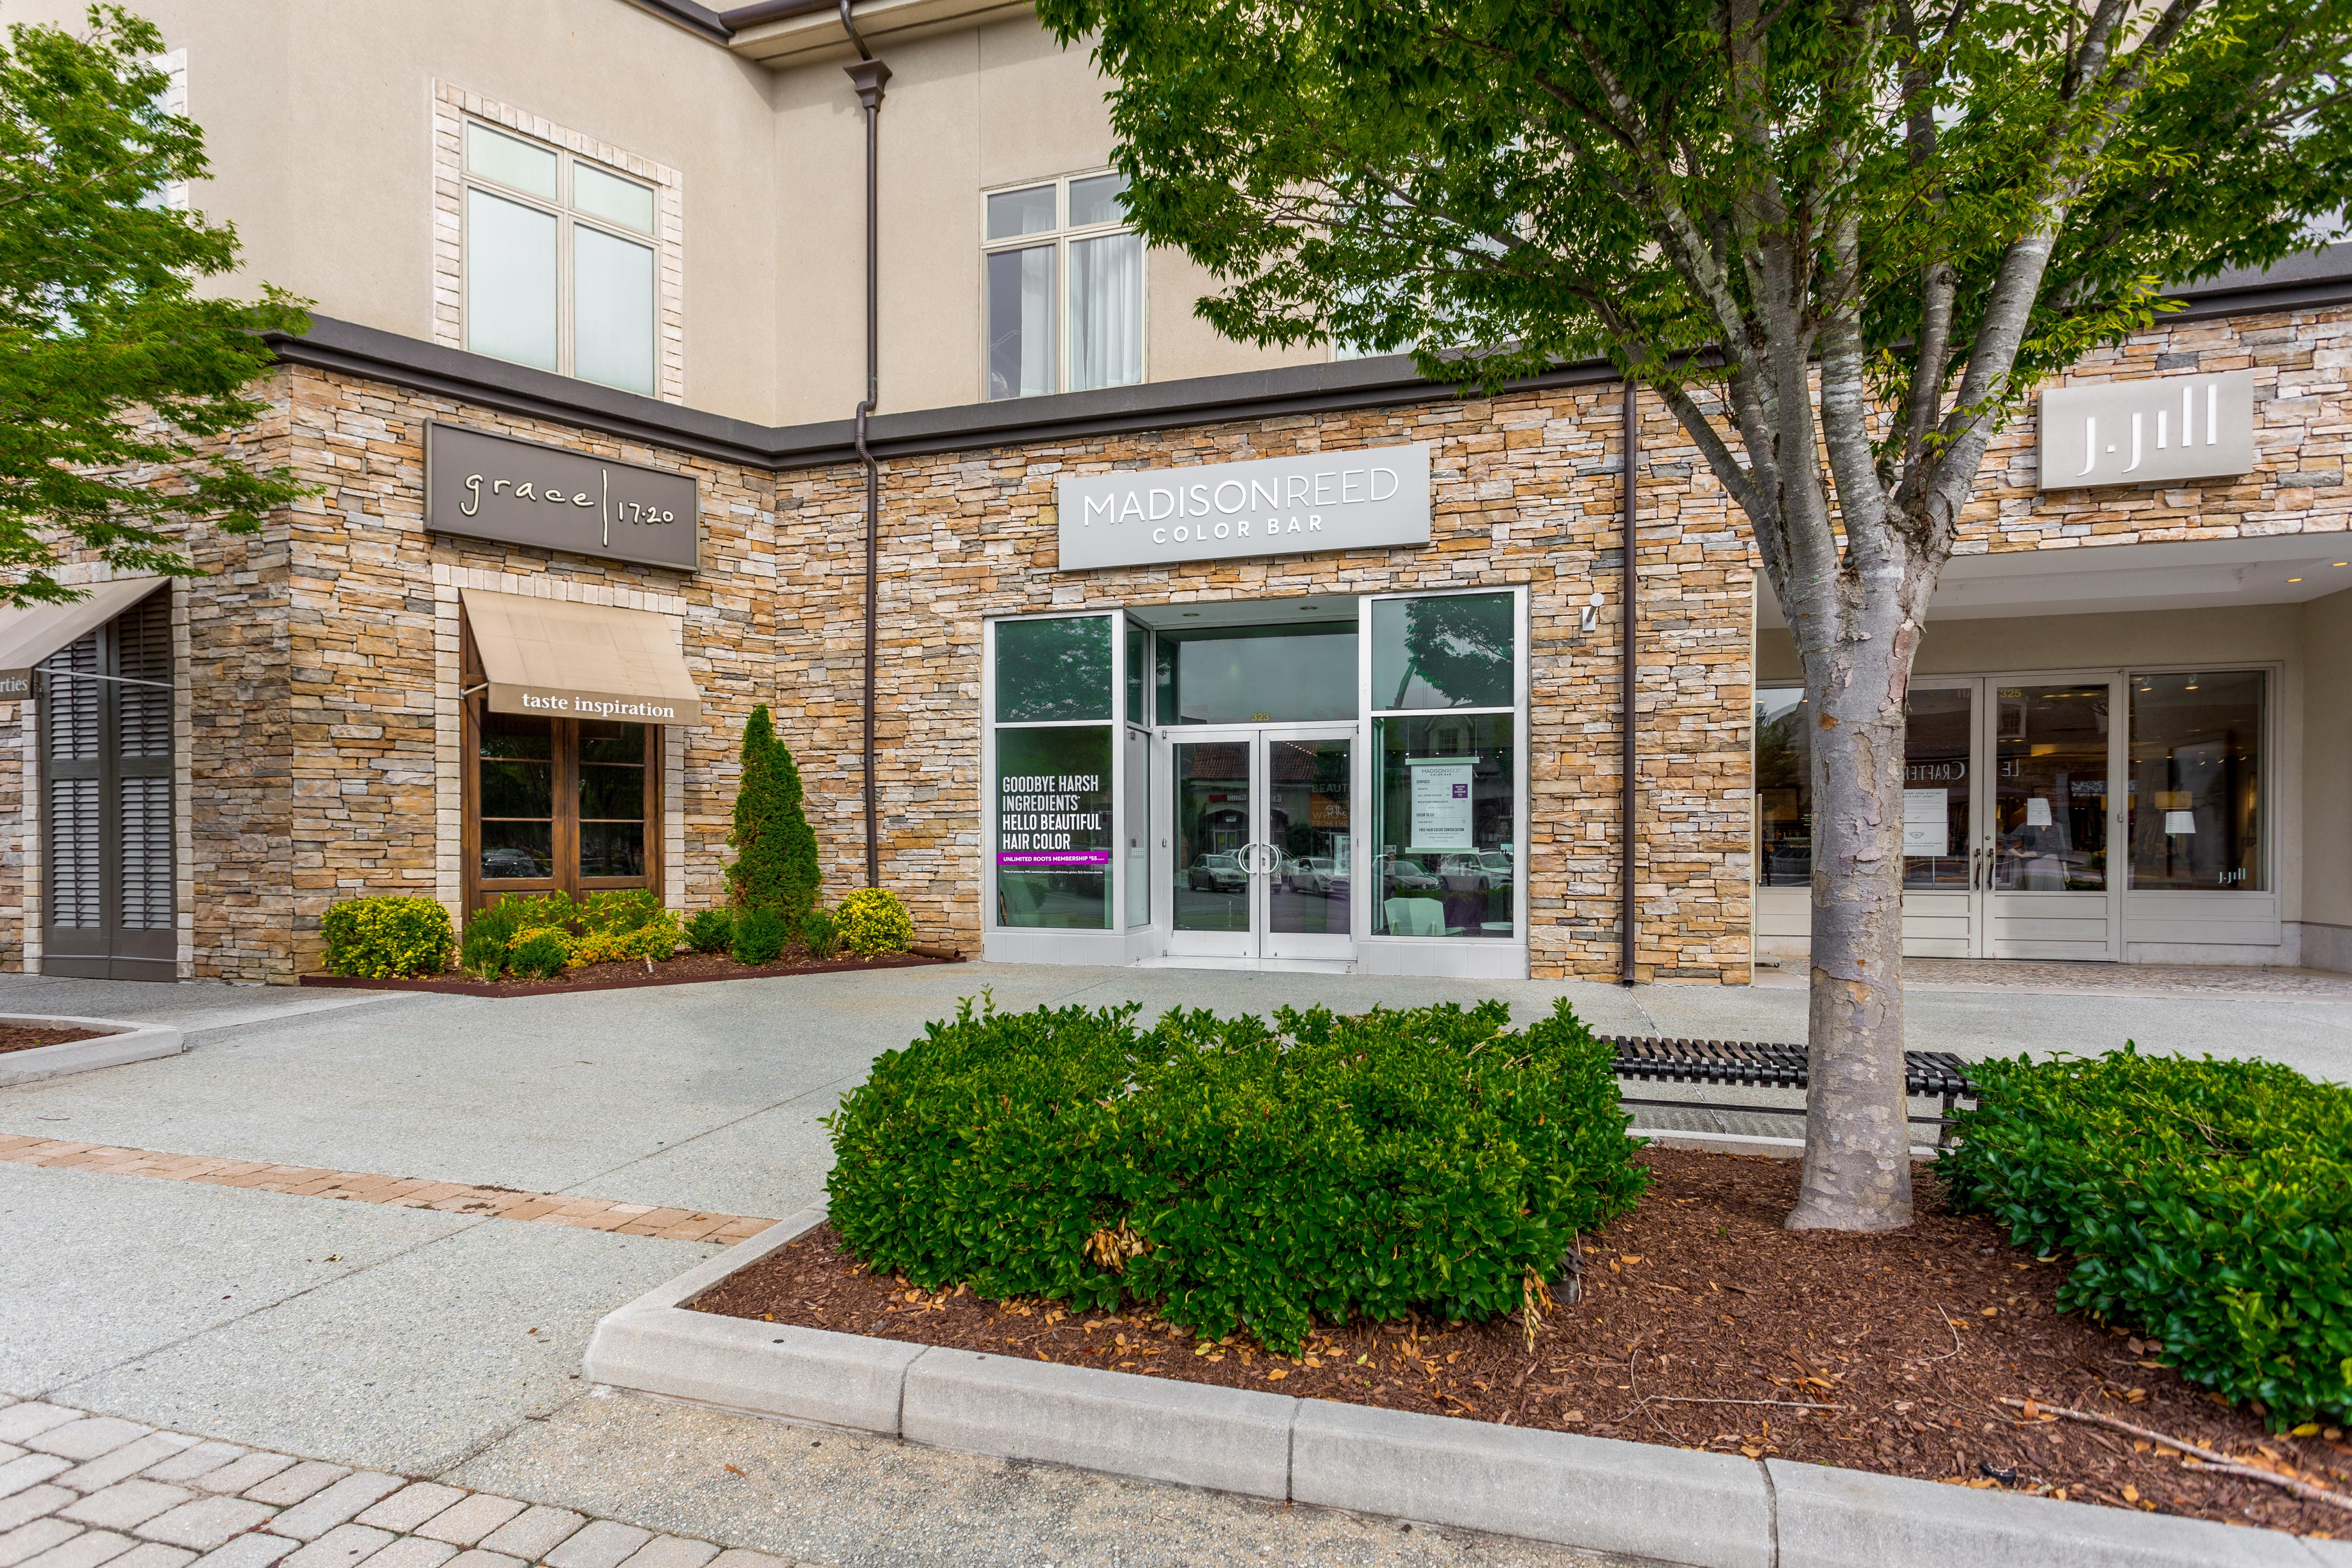 Exterior Photo of Madison Reed Color Bar Peachtree Corners